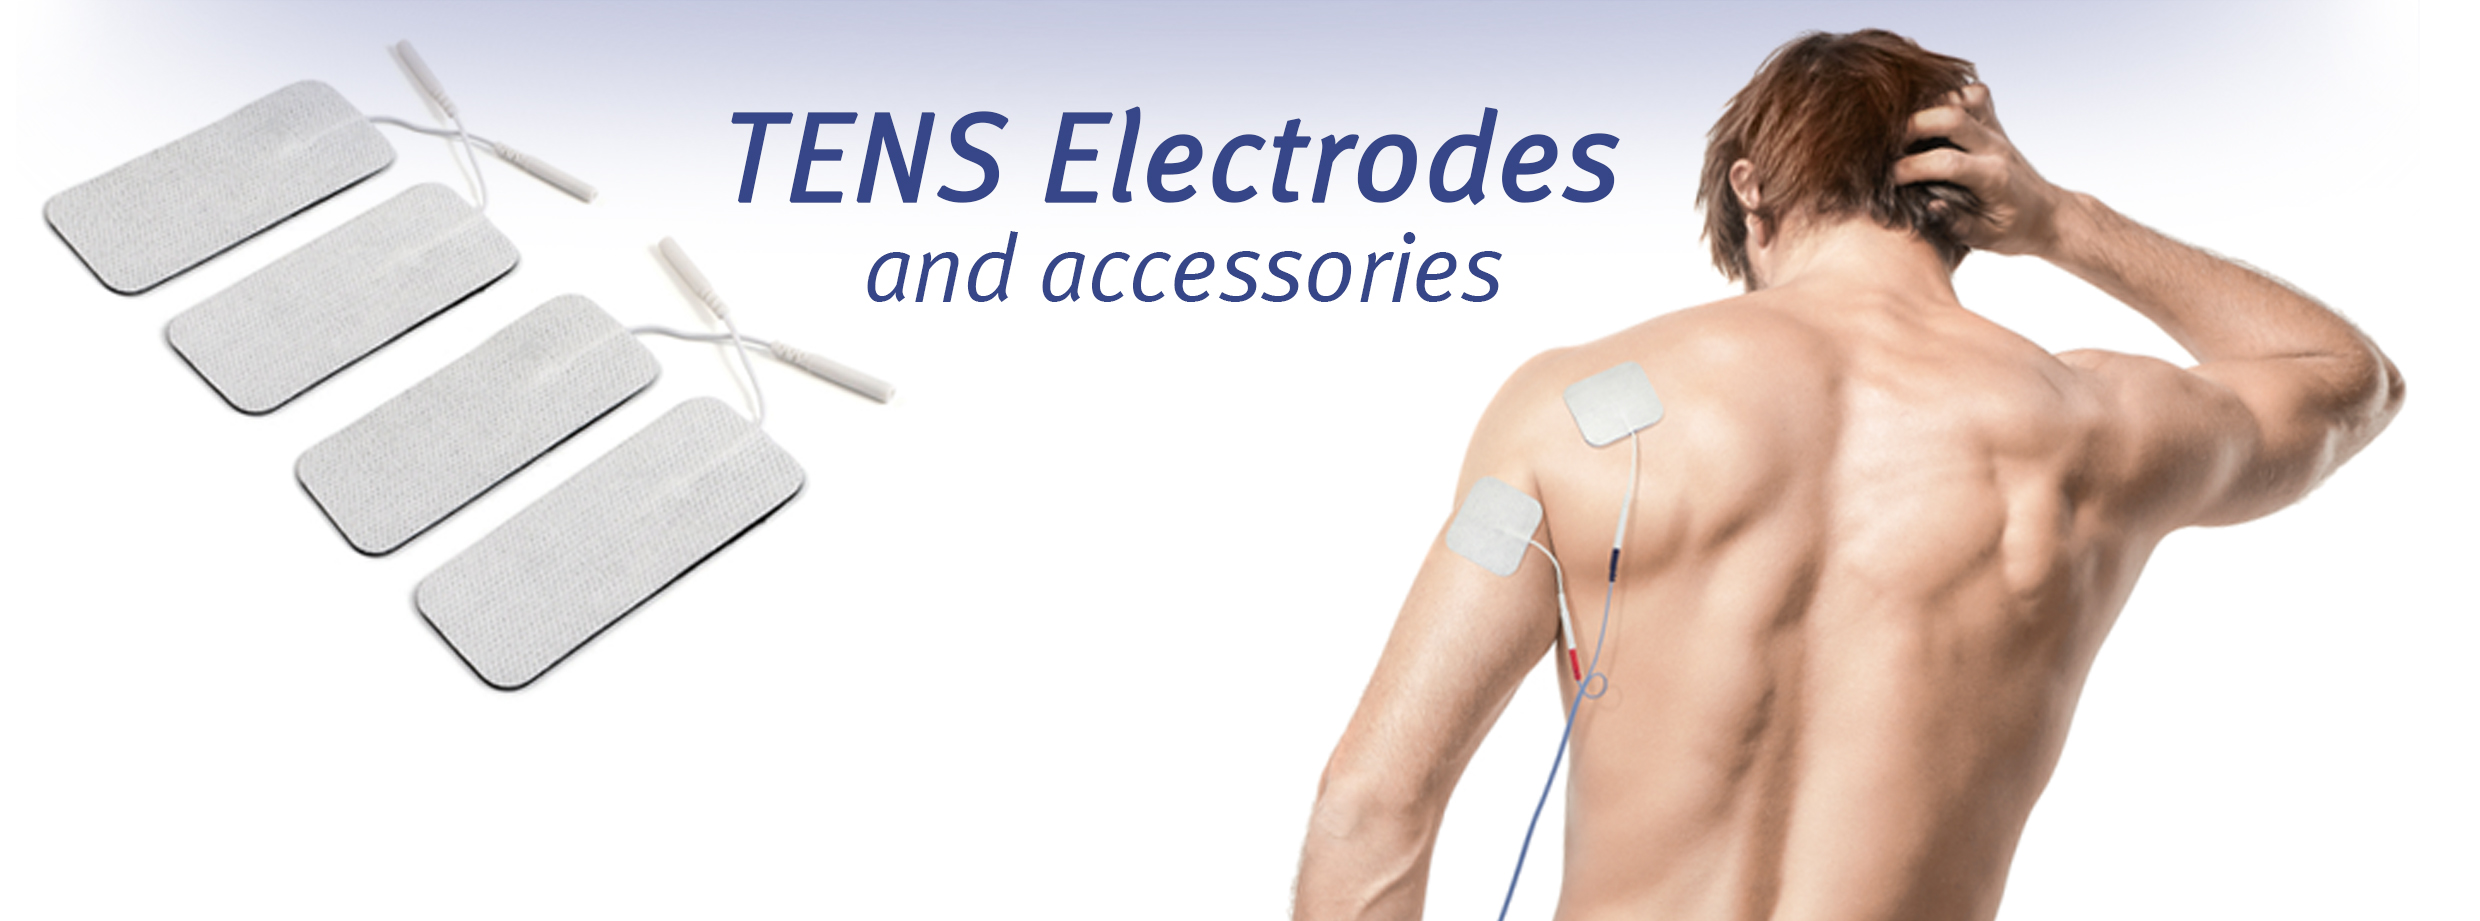 TENS electrodes and accessories